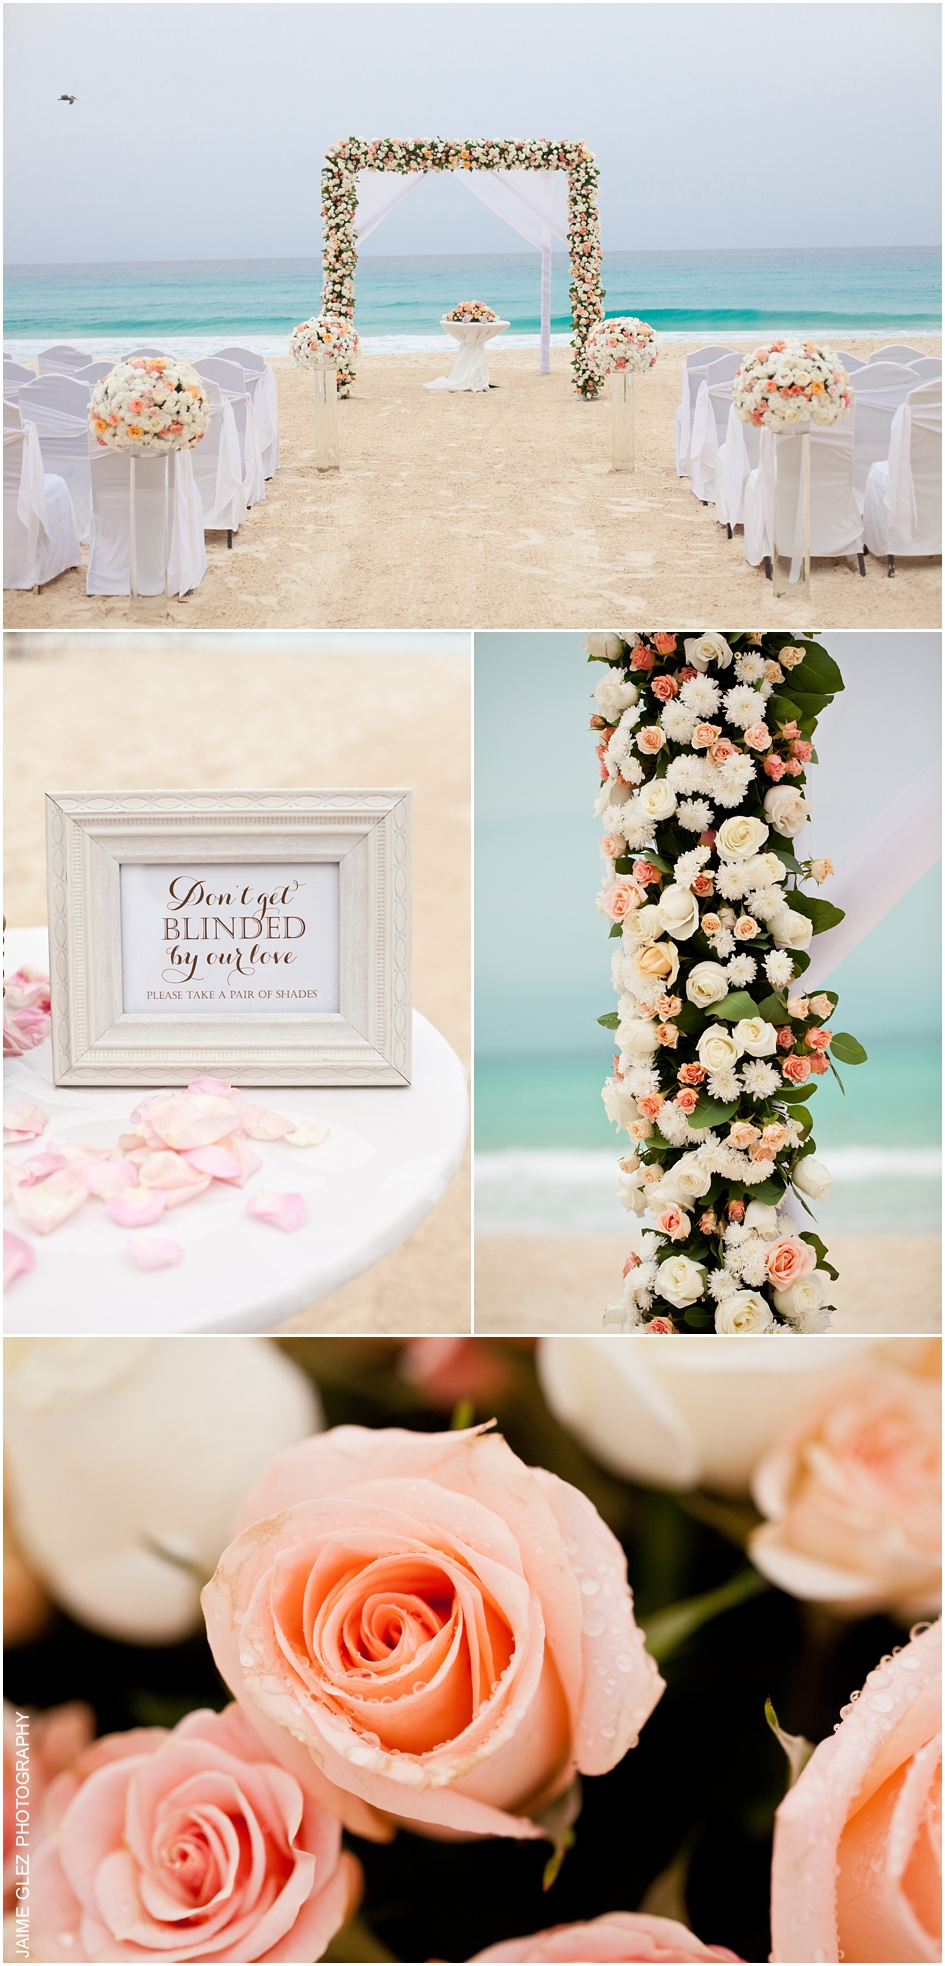 Sweet romantic beach wedding ceremony decor. Love the coral color roses!